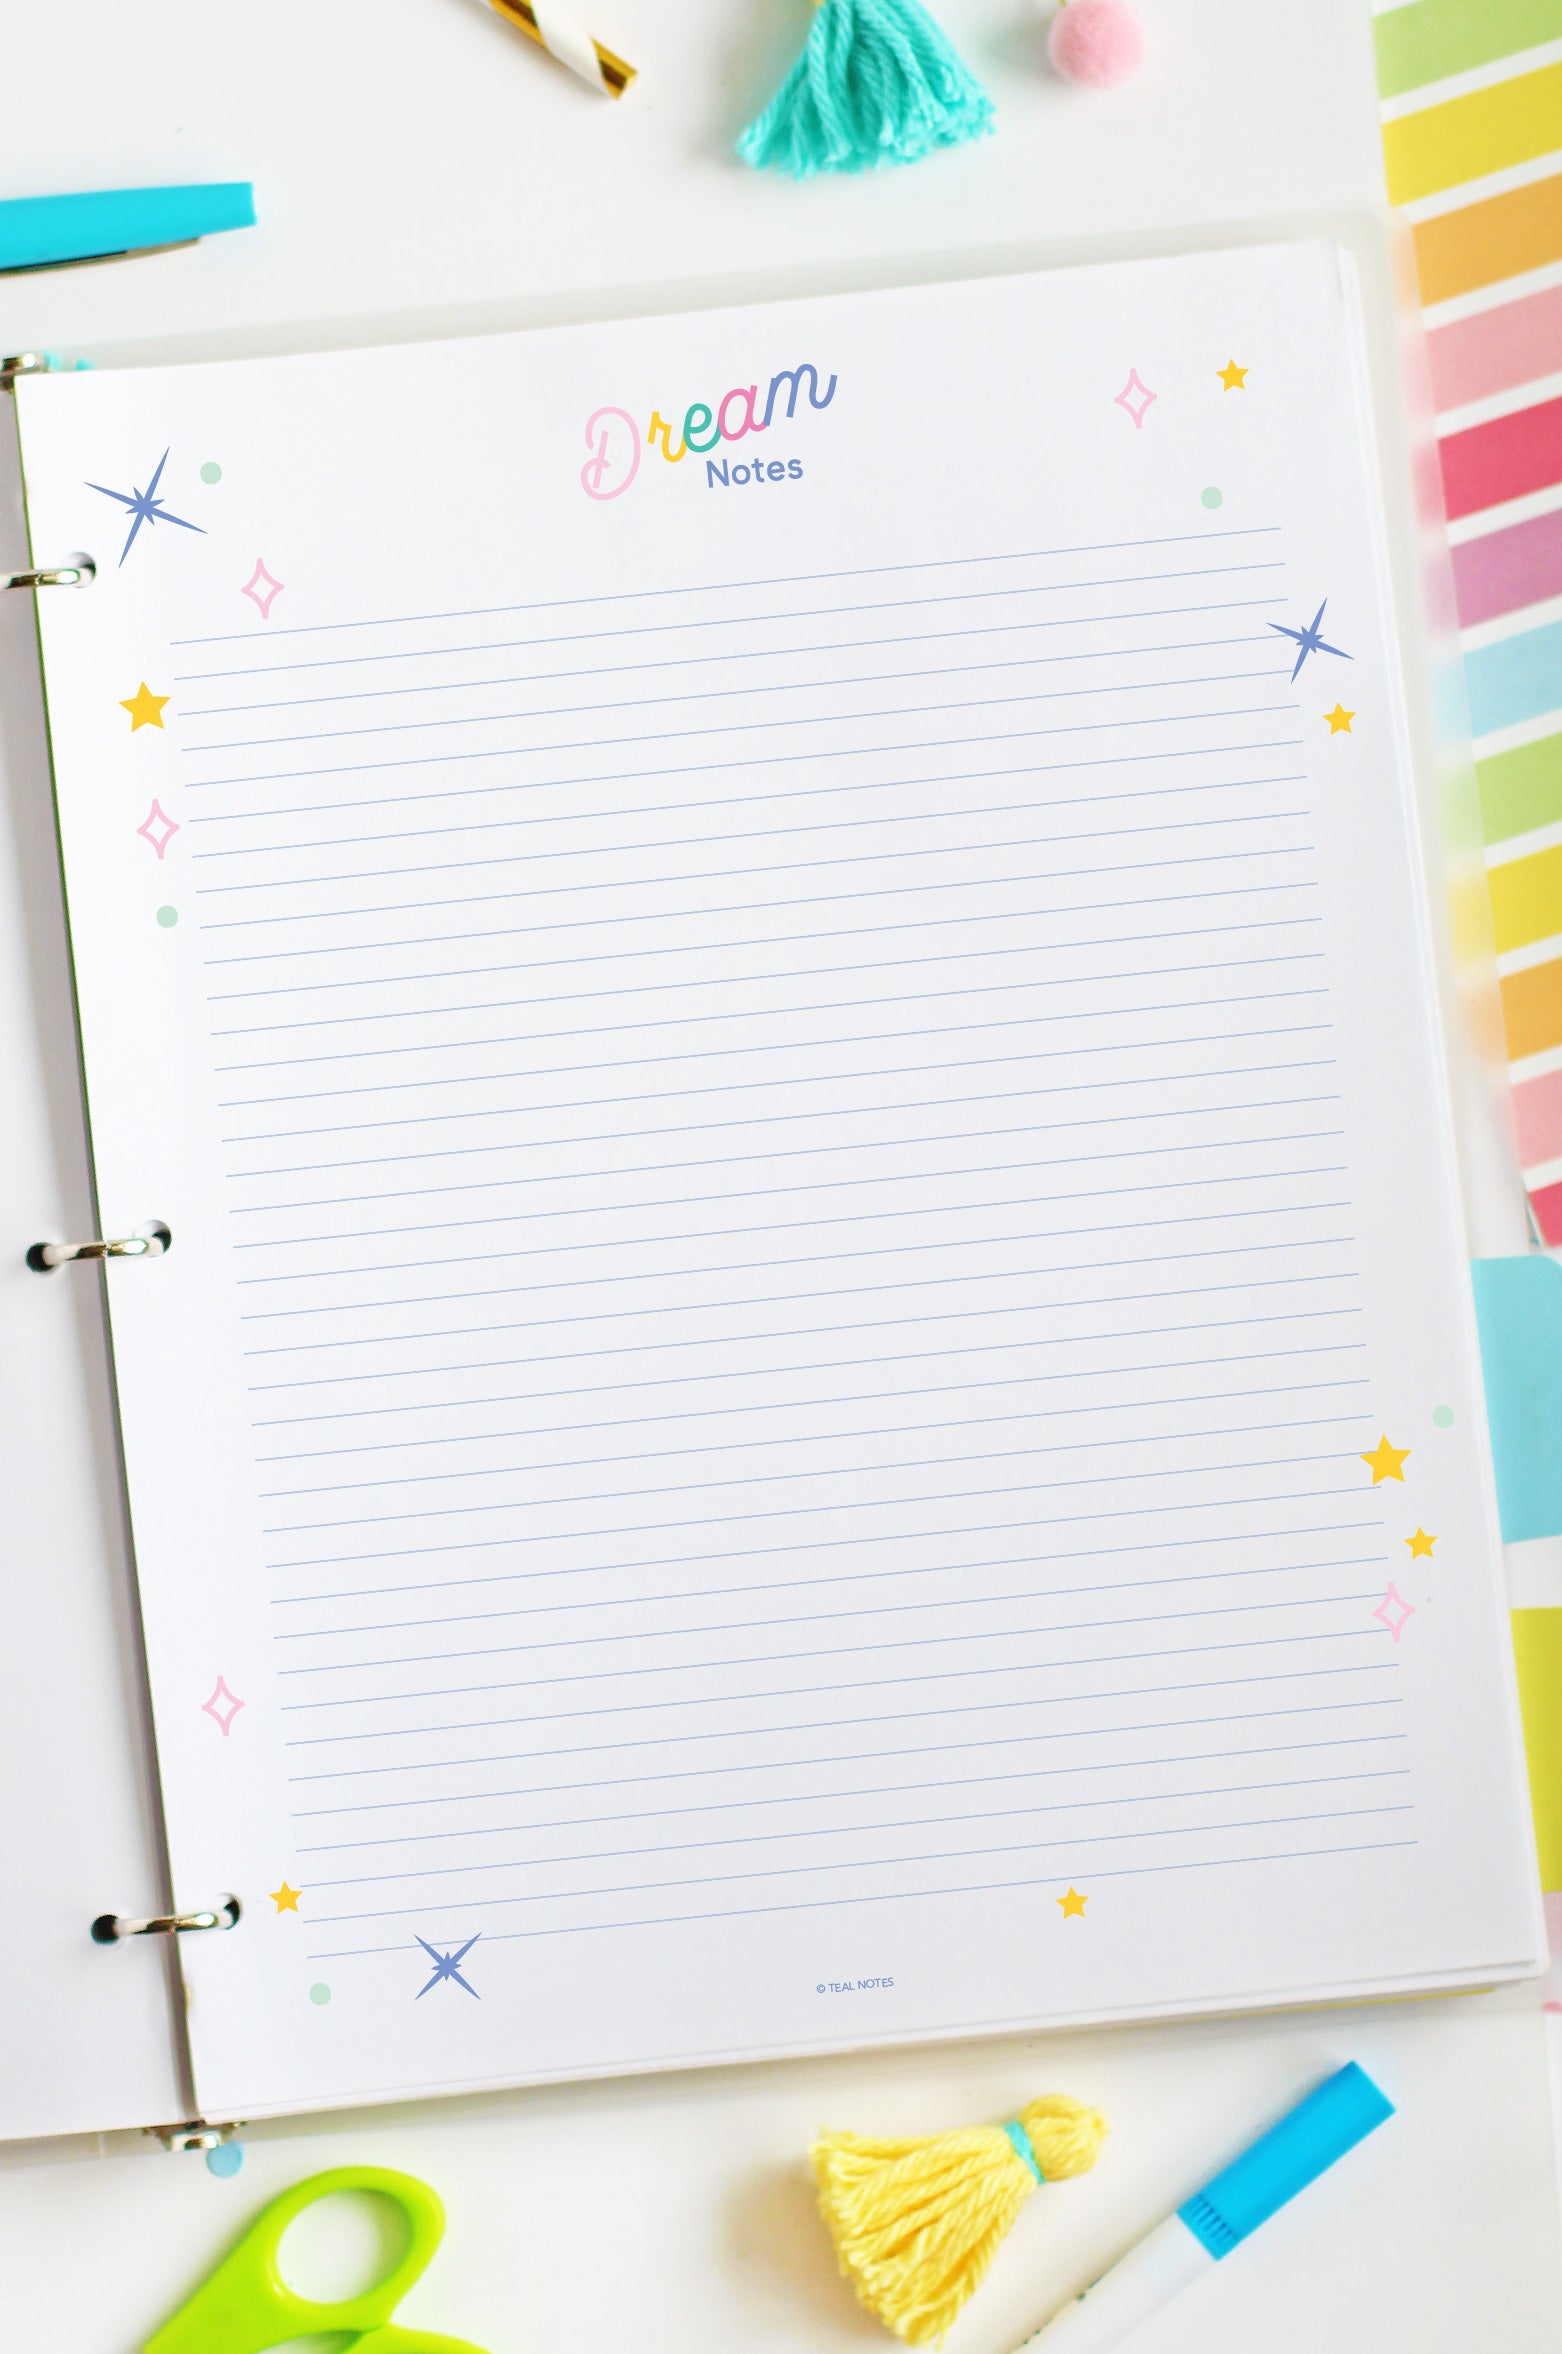 printable dream journal notes page